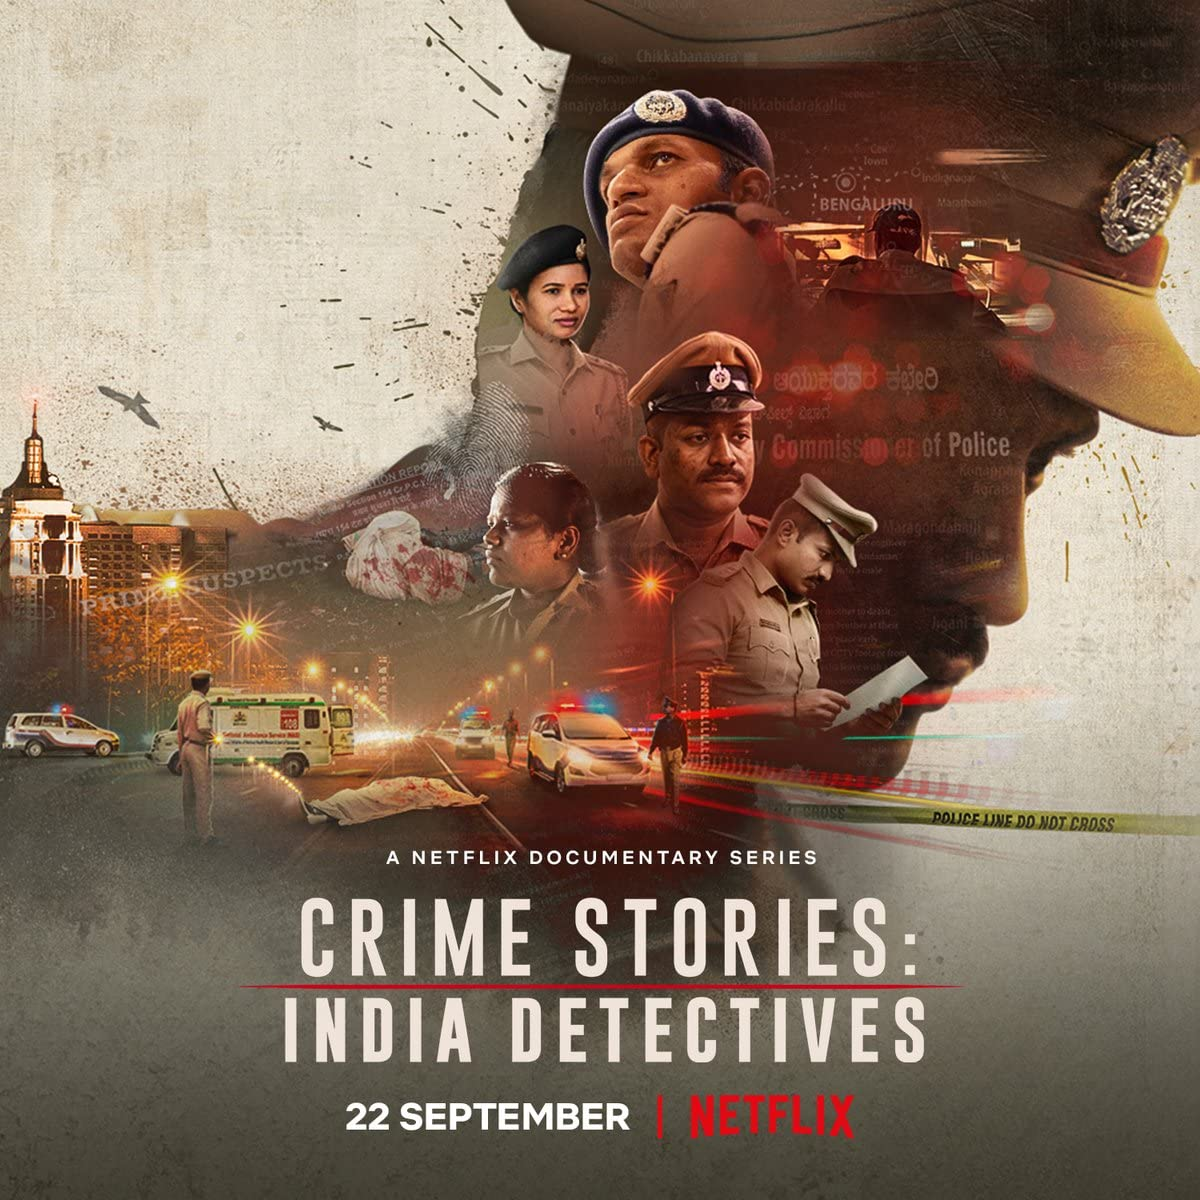 Crime Stories: India Detectives (2021) 720p HEVC HDRip S01 Complete NF Series [Dual Audio] [Hindi or English] x265 AAC ESubs [1.1GB]. V1 FMjpg UX1200